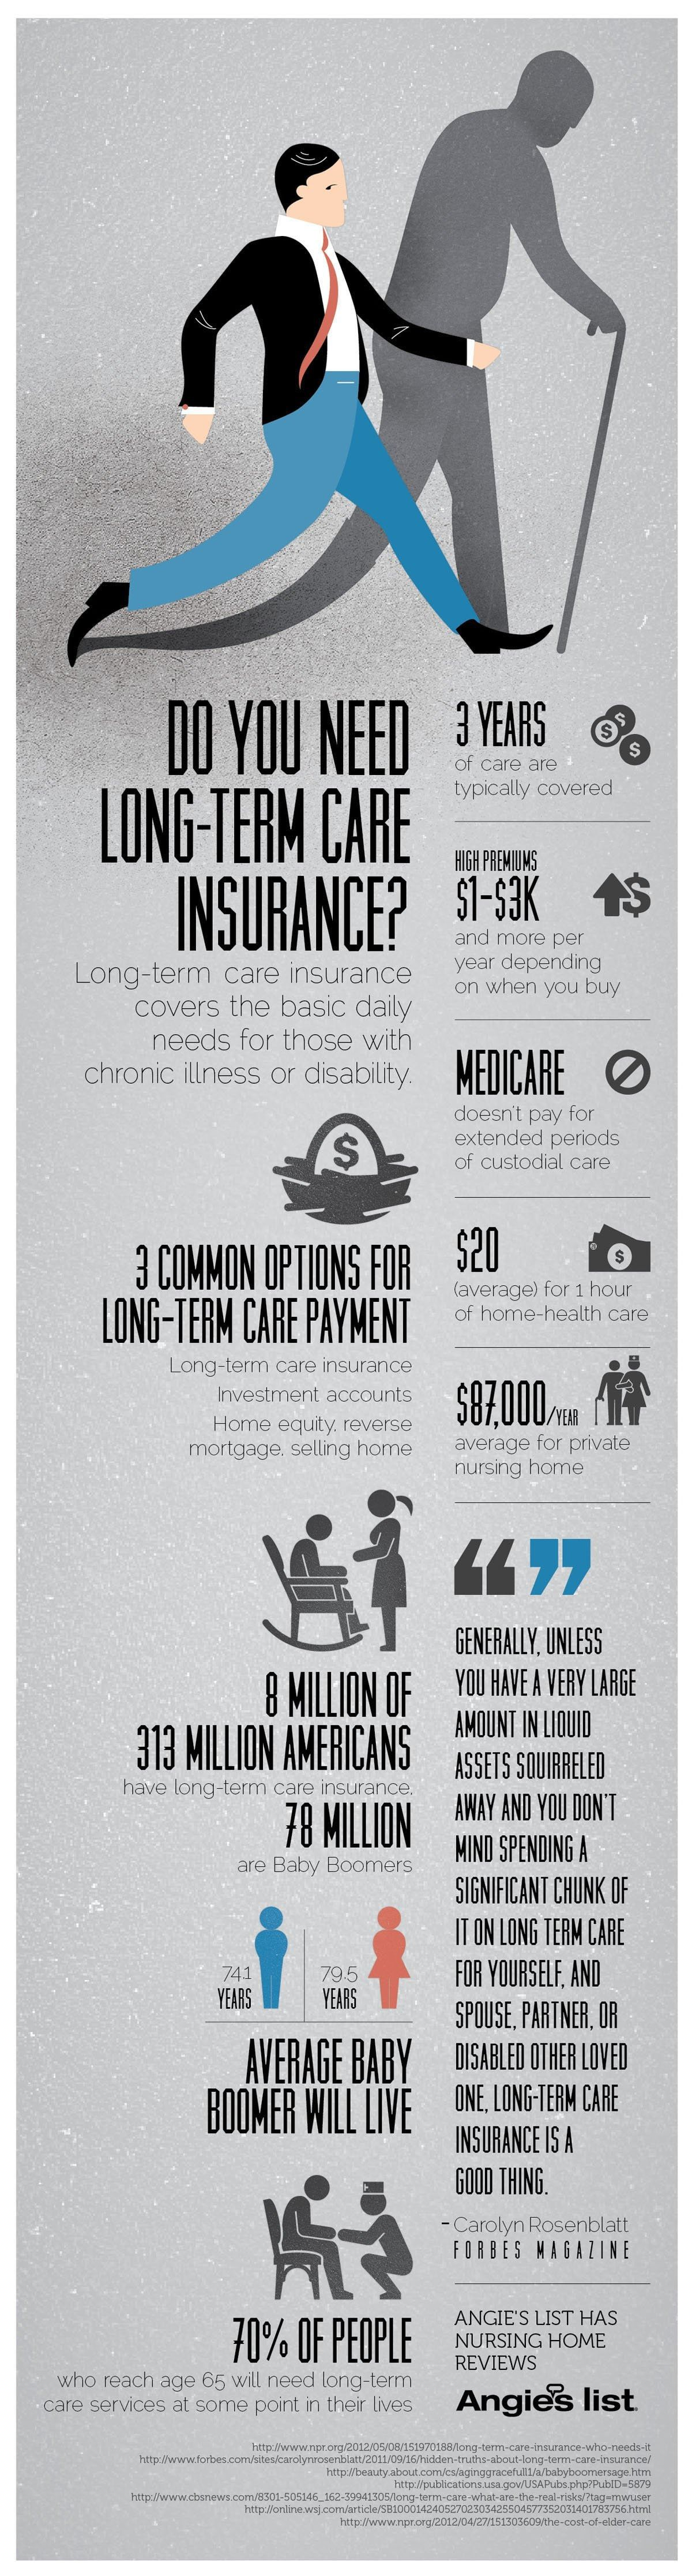 Do you need long term care insurance? Longtermcare